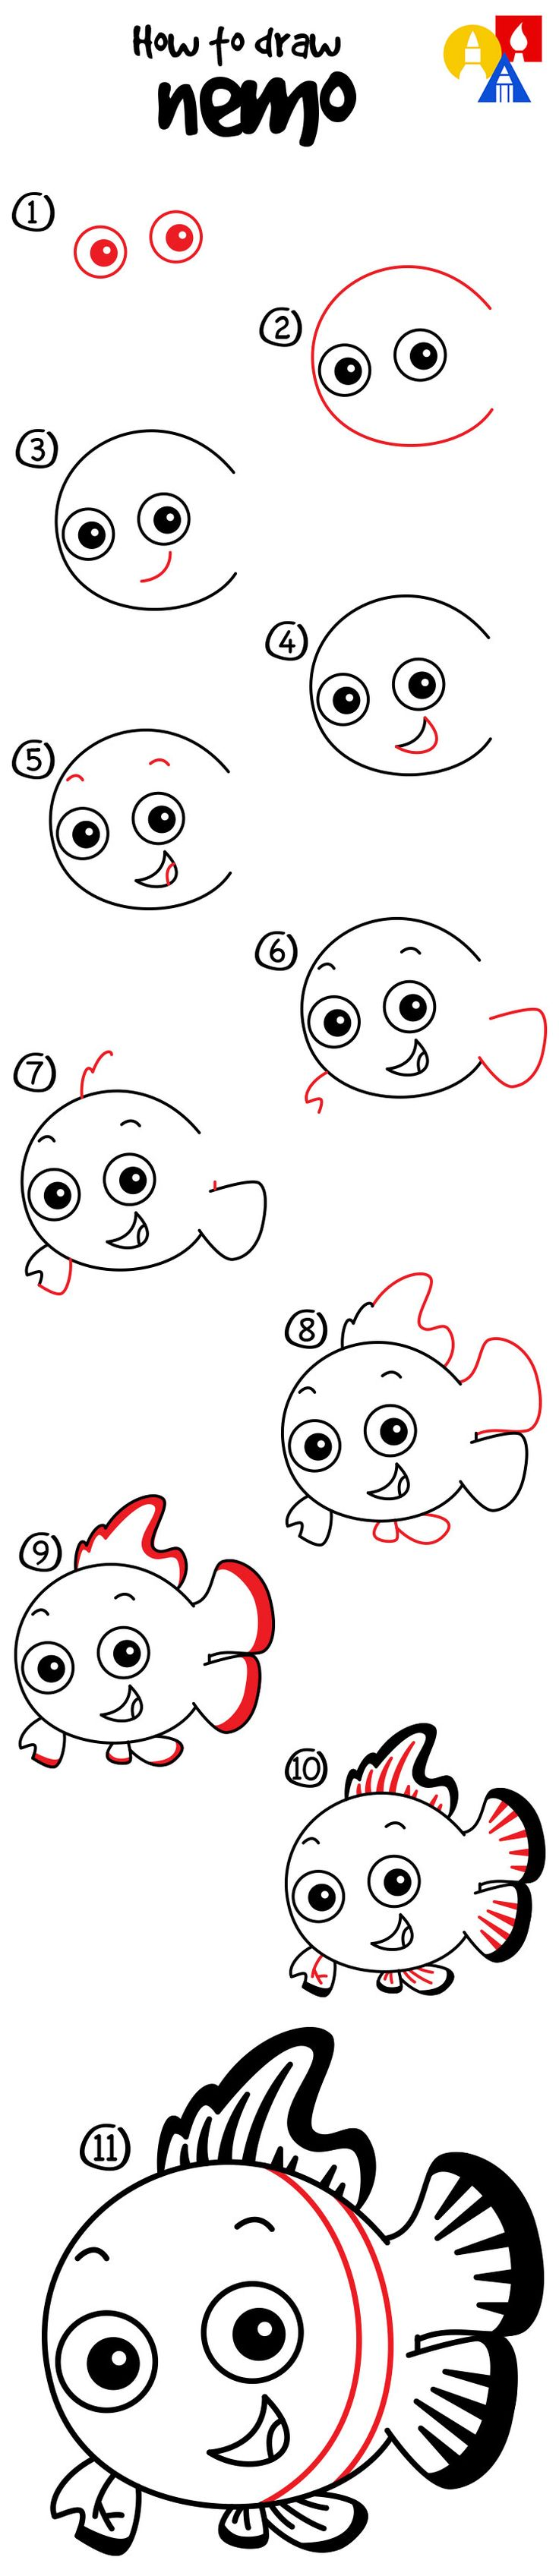 62 best afkh step by steps images on pinterest easy drawings how to draw nemo art for kids hub drawing stepdory altavistaventures Image collections